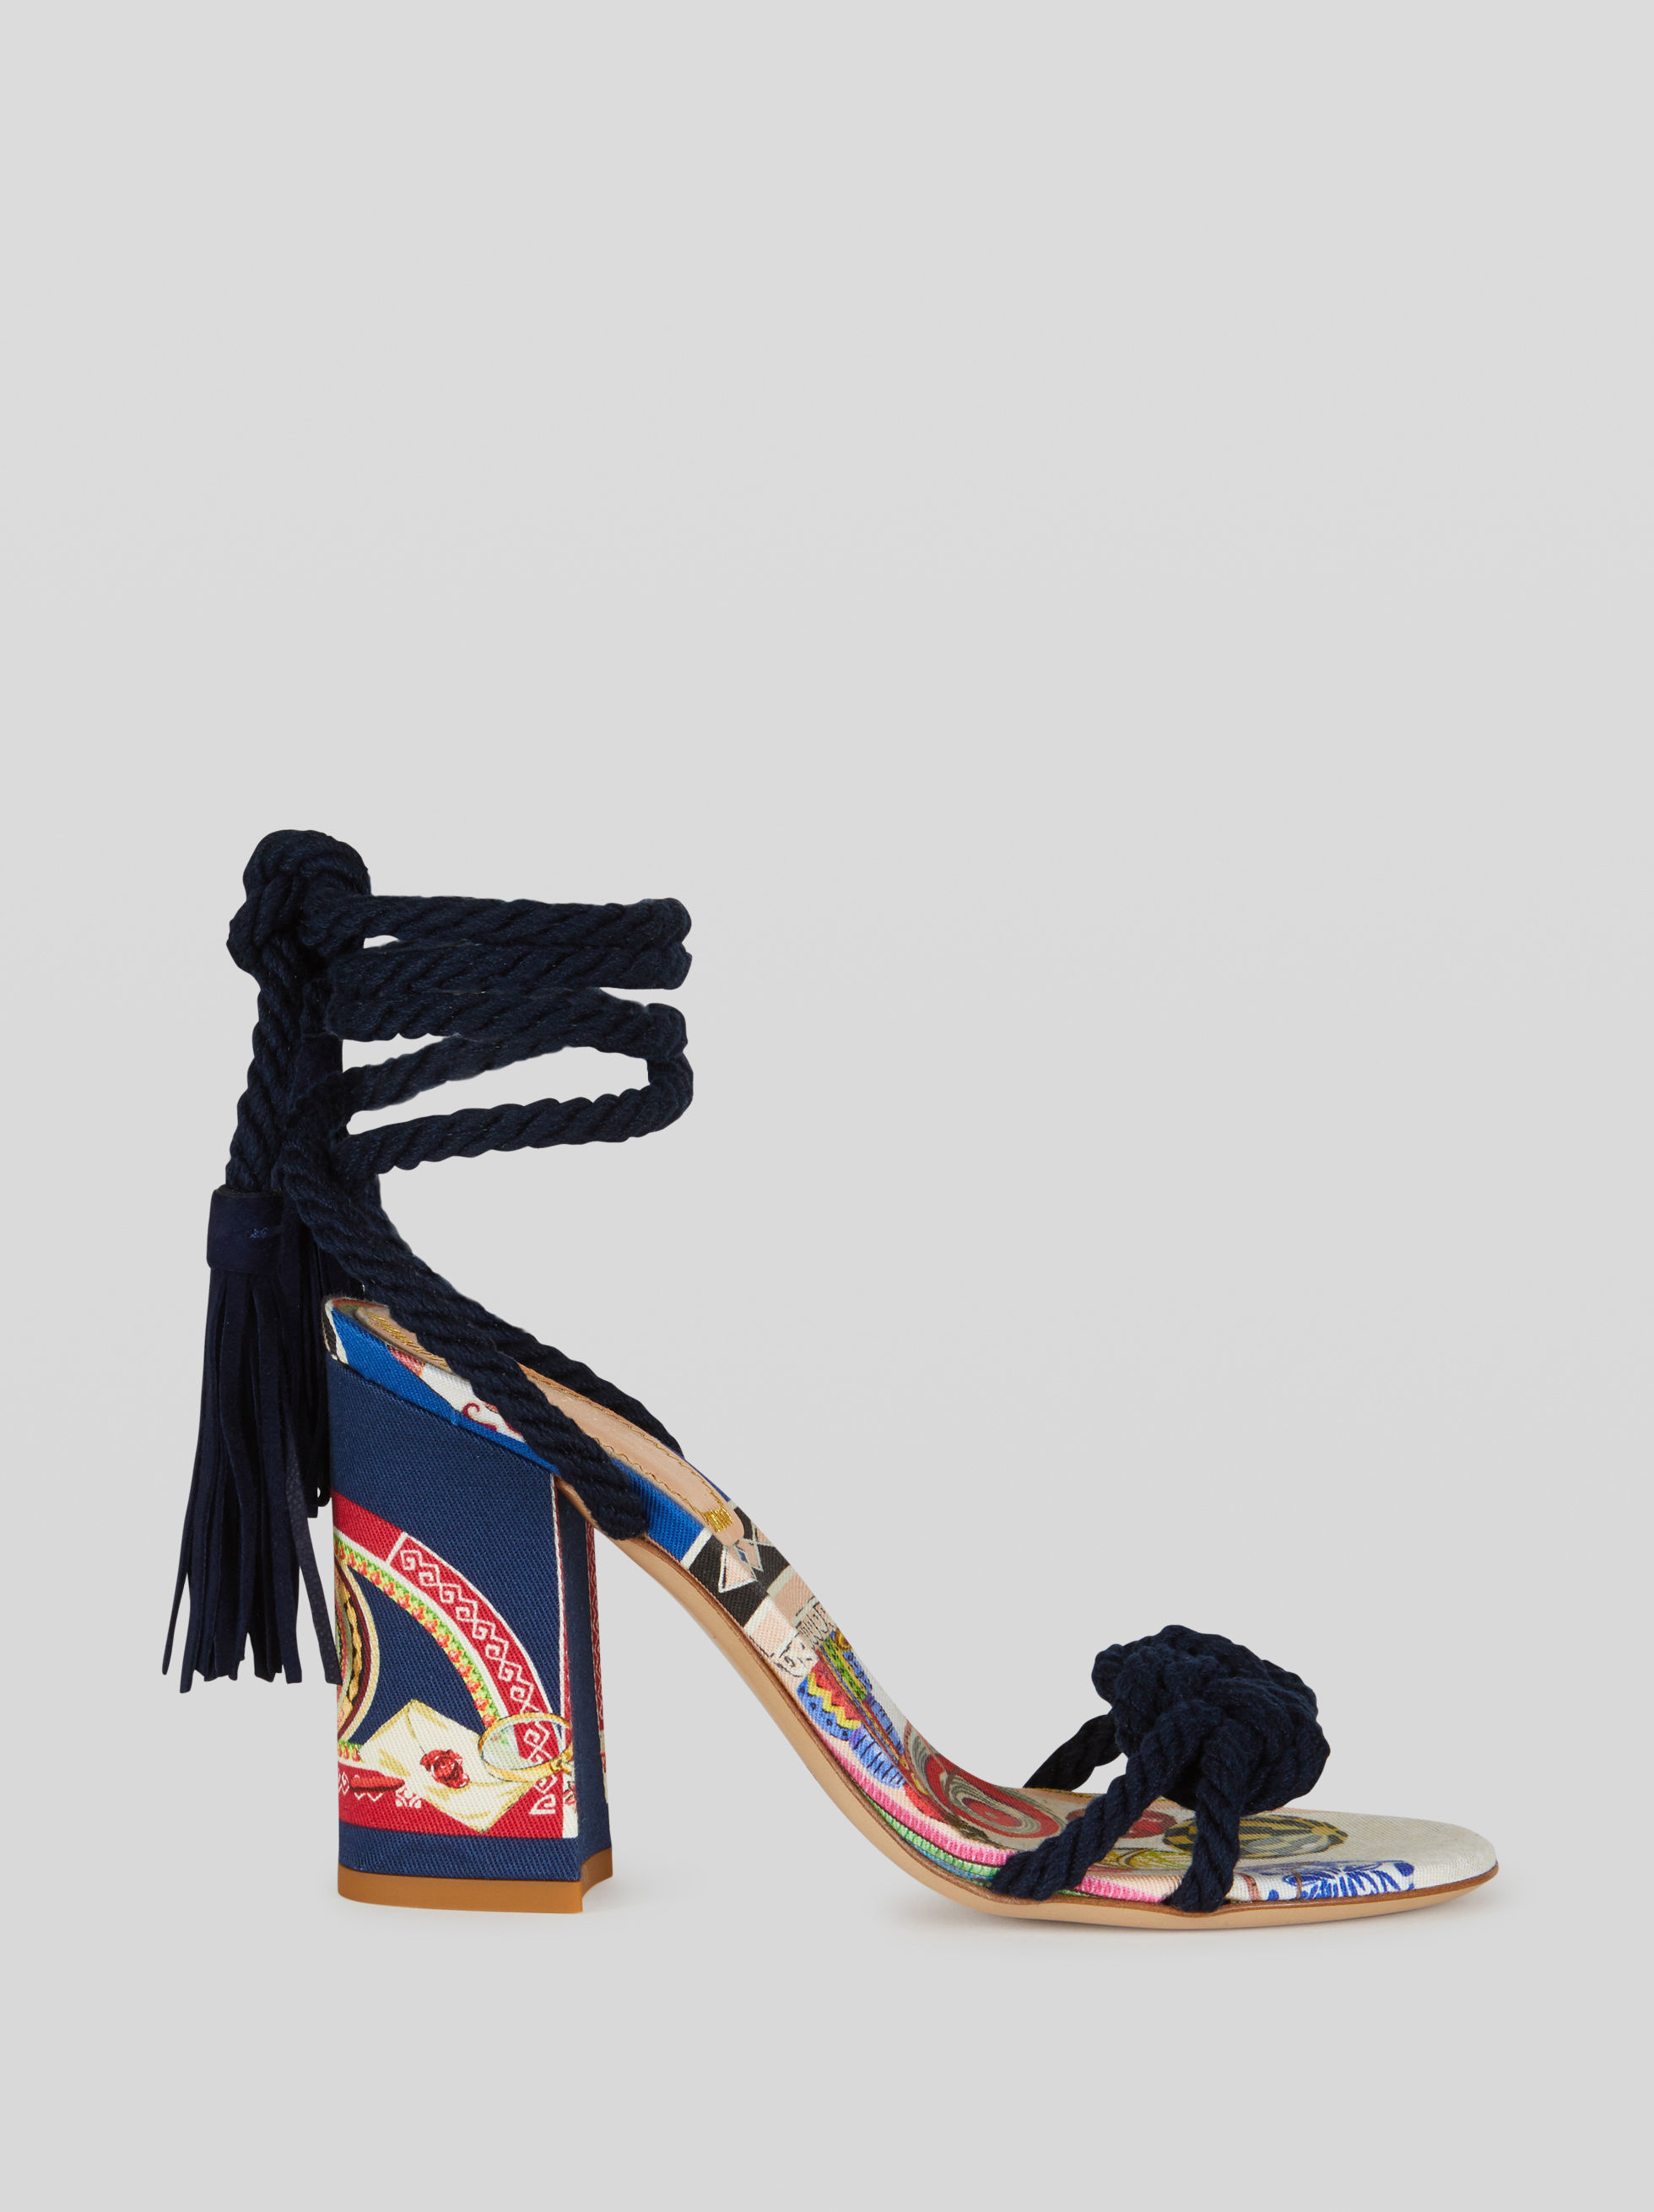 SANDALS PRINTED WITH NAUTICAL KNOT